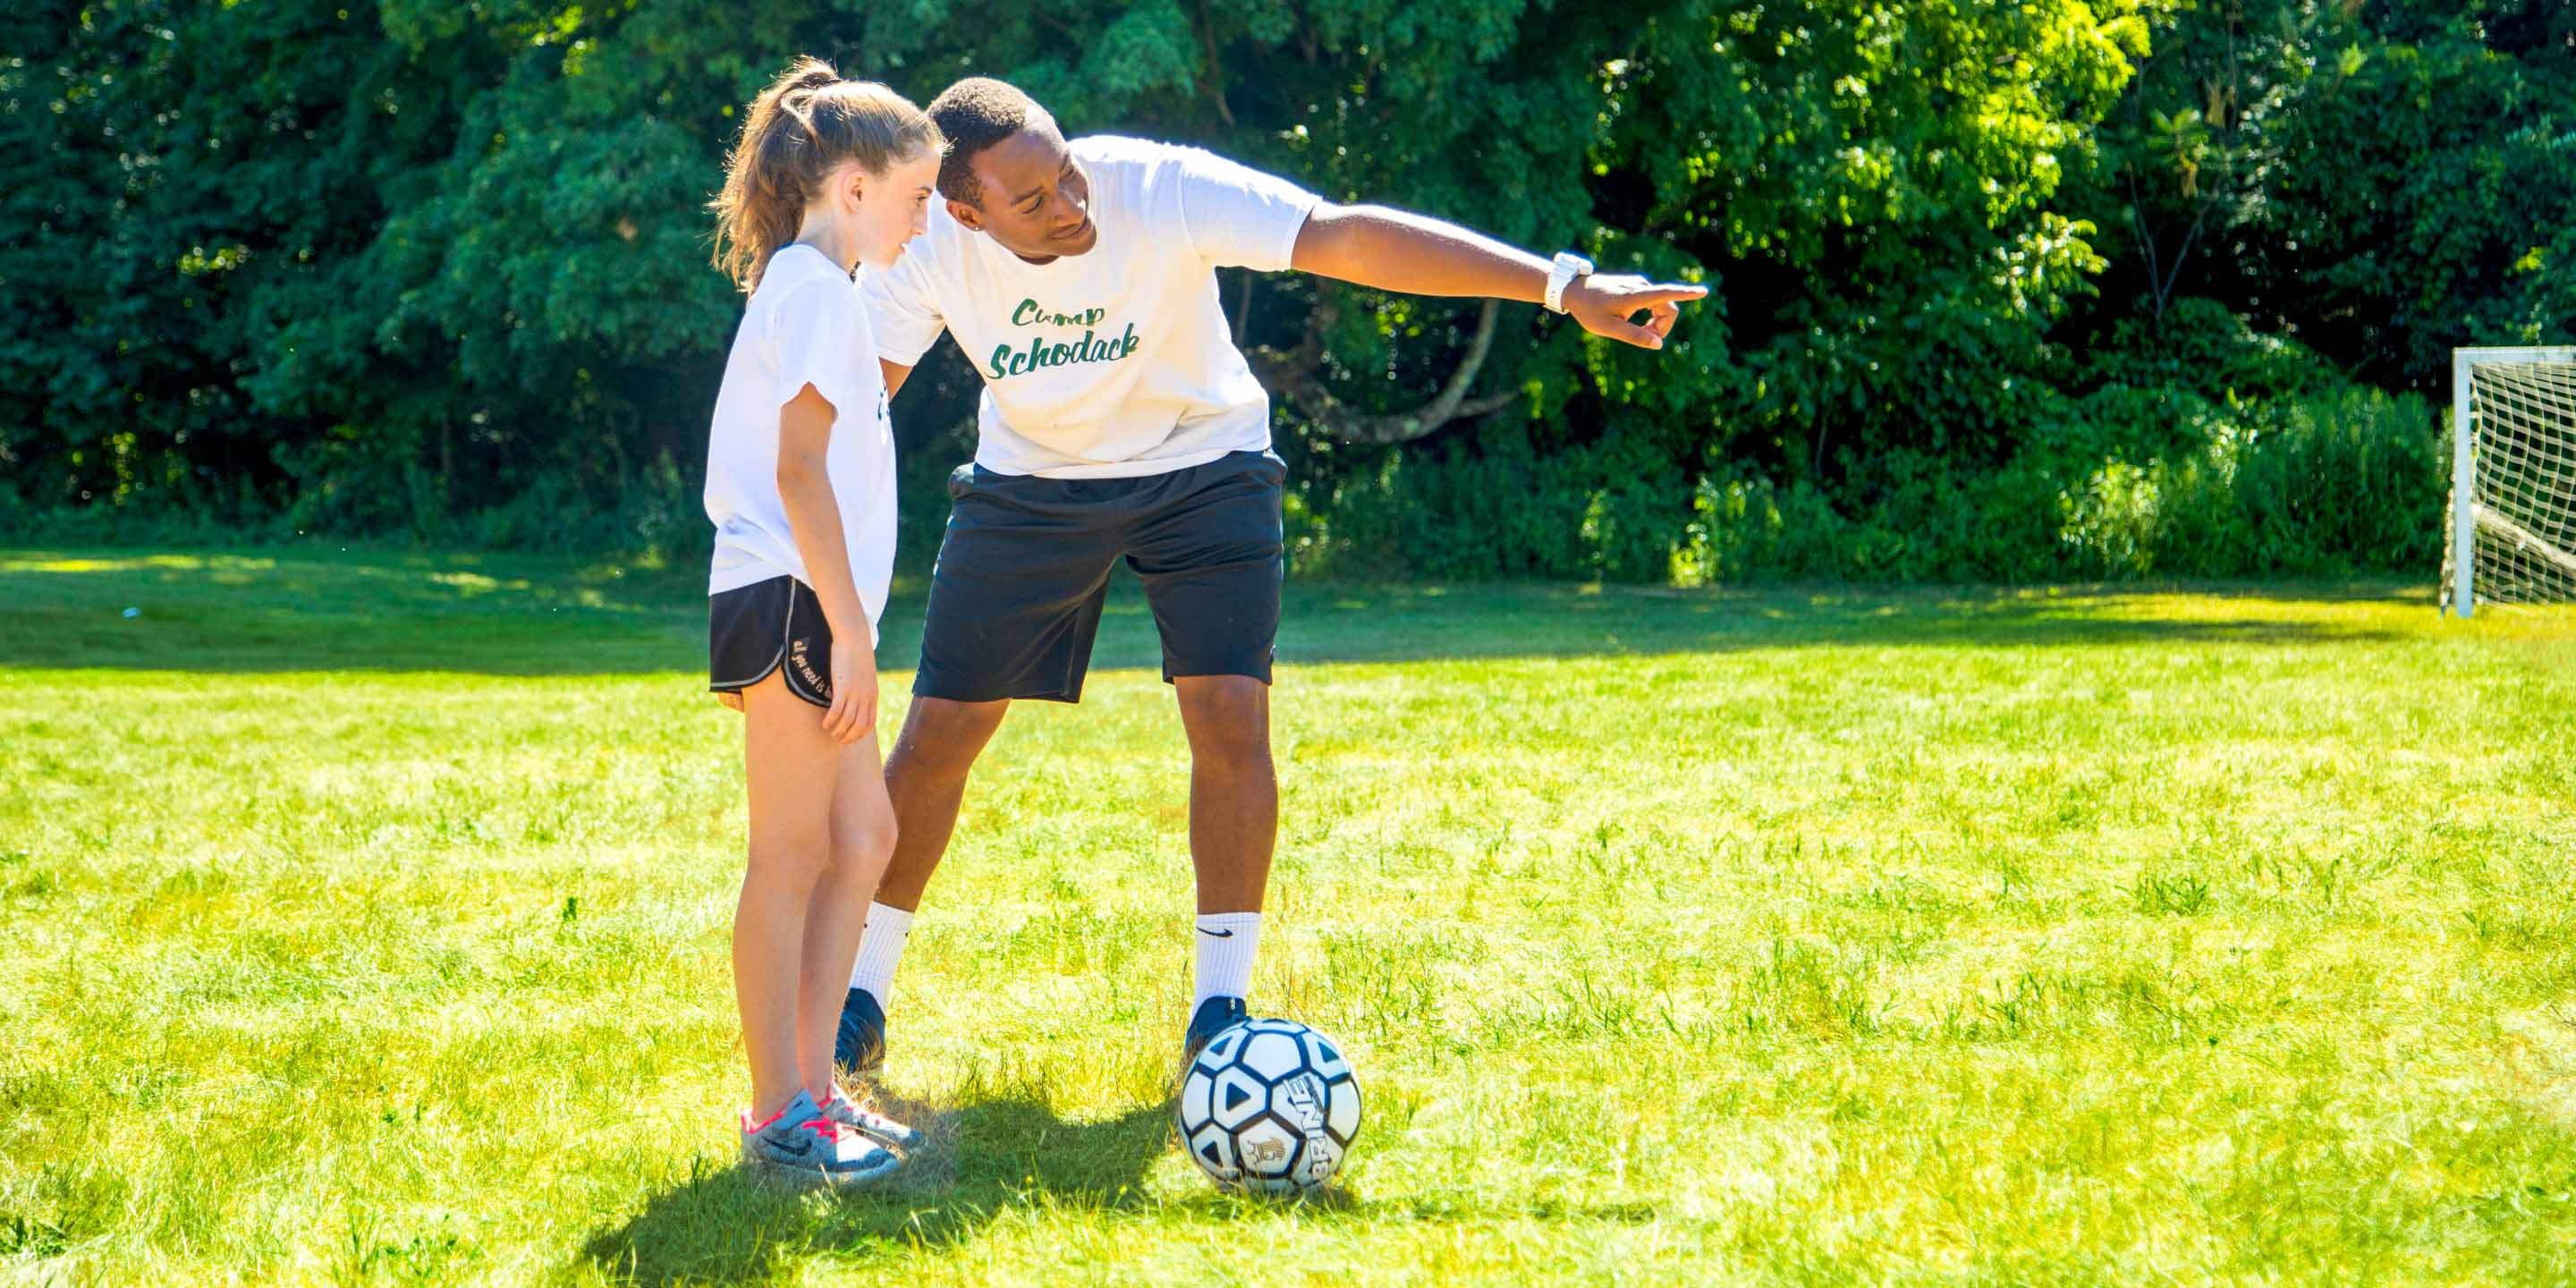 Staff member helps girl practice soccer at summer camp